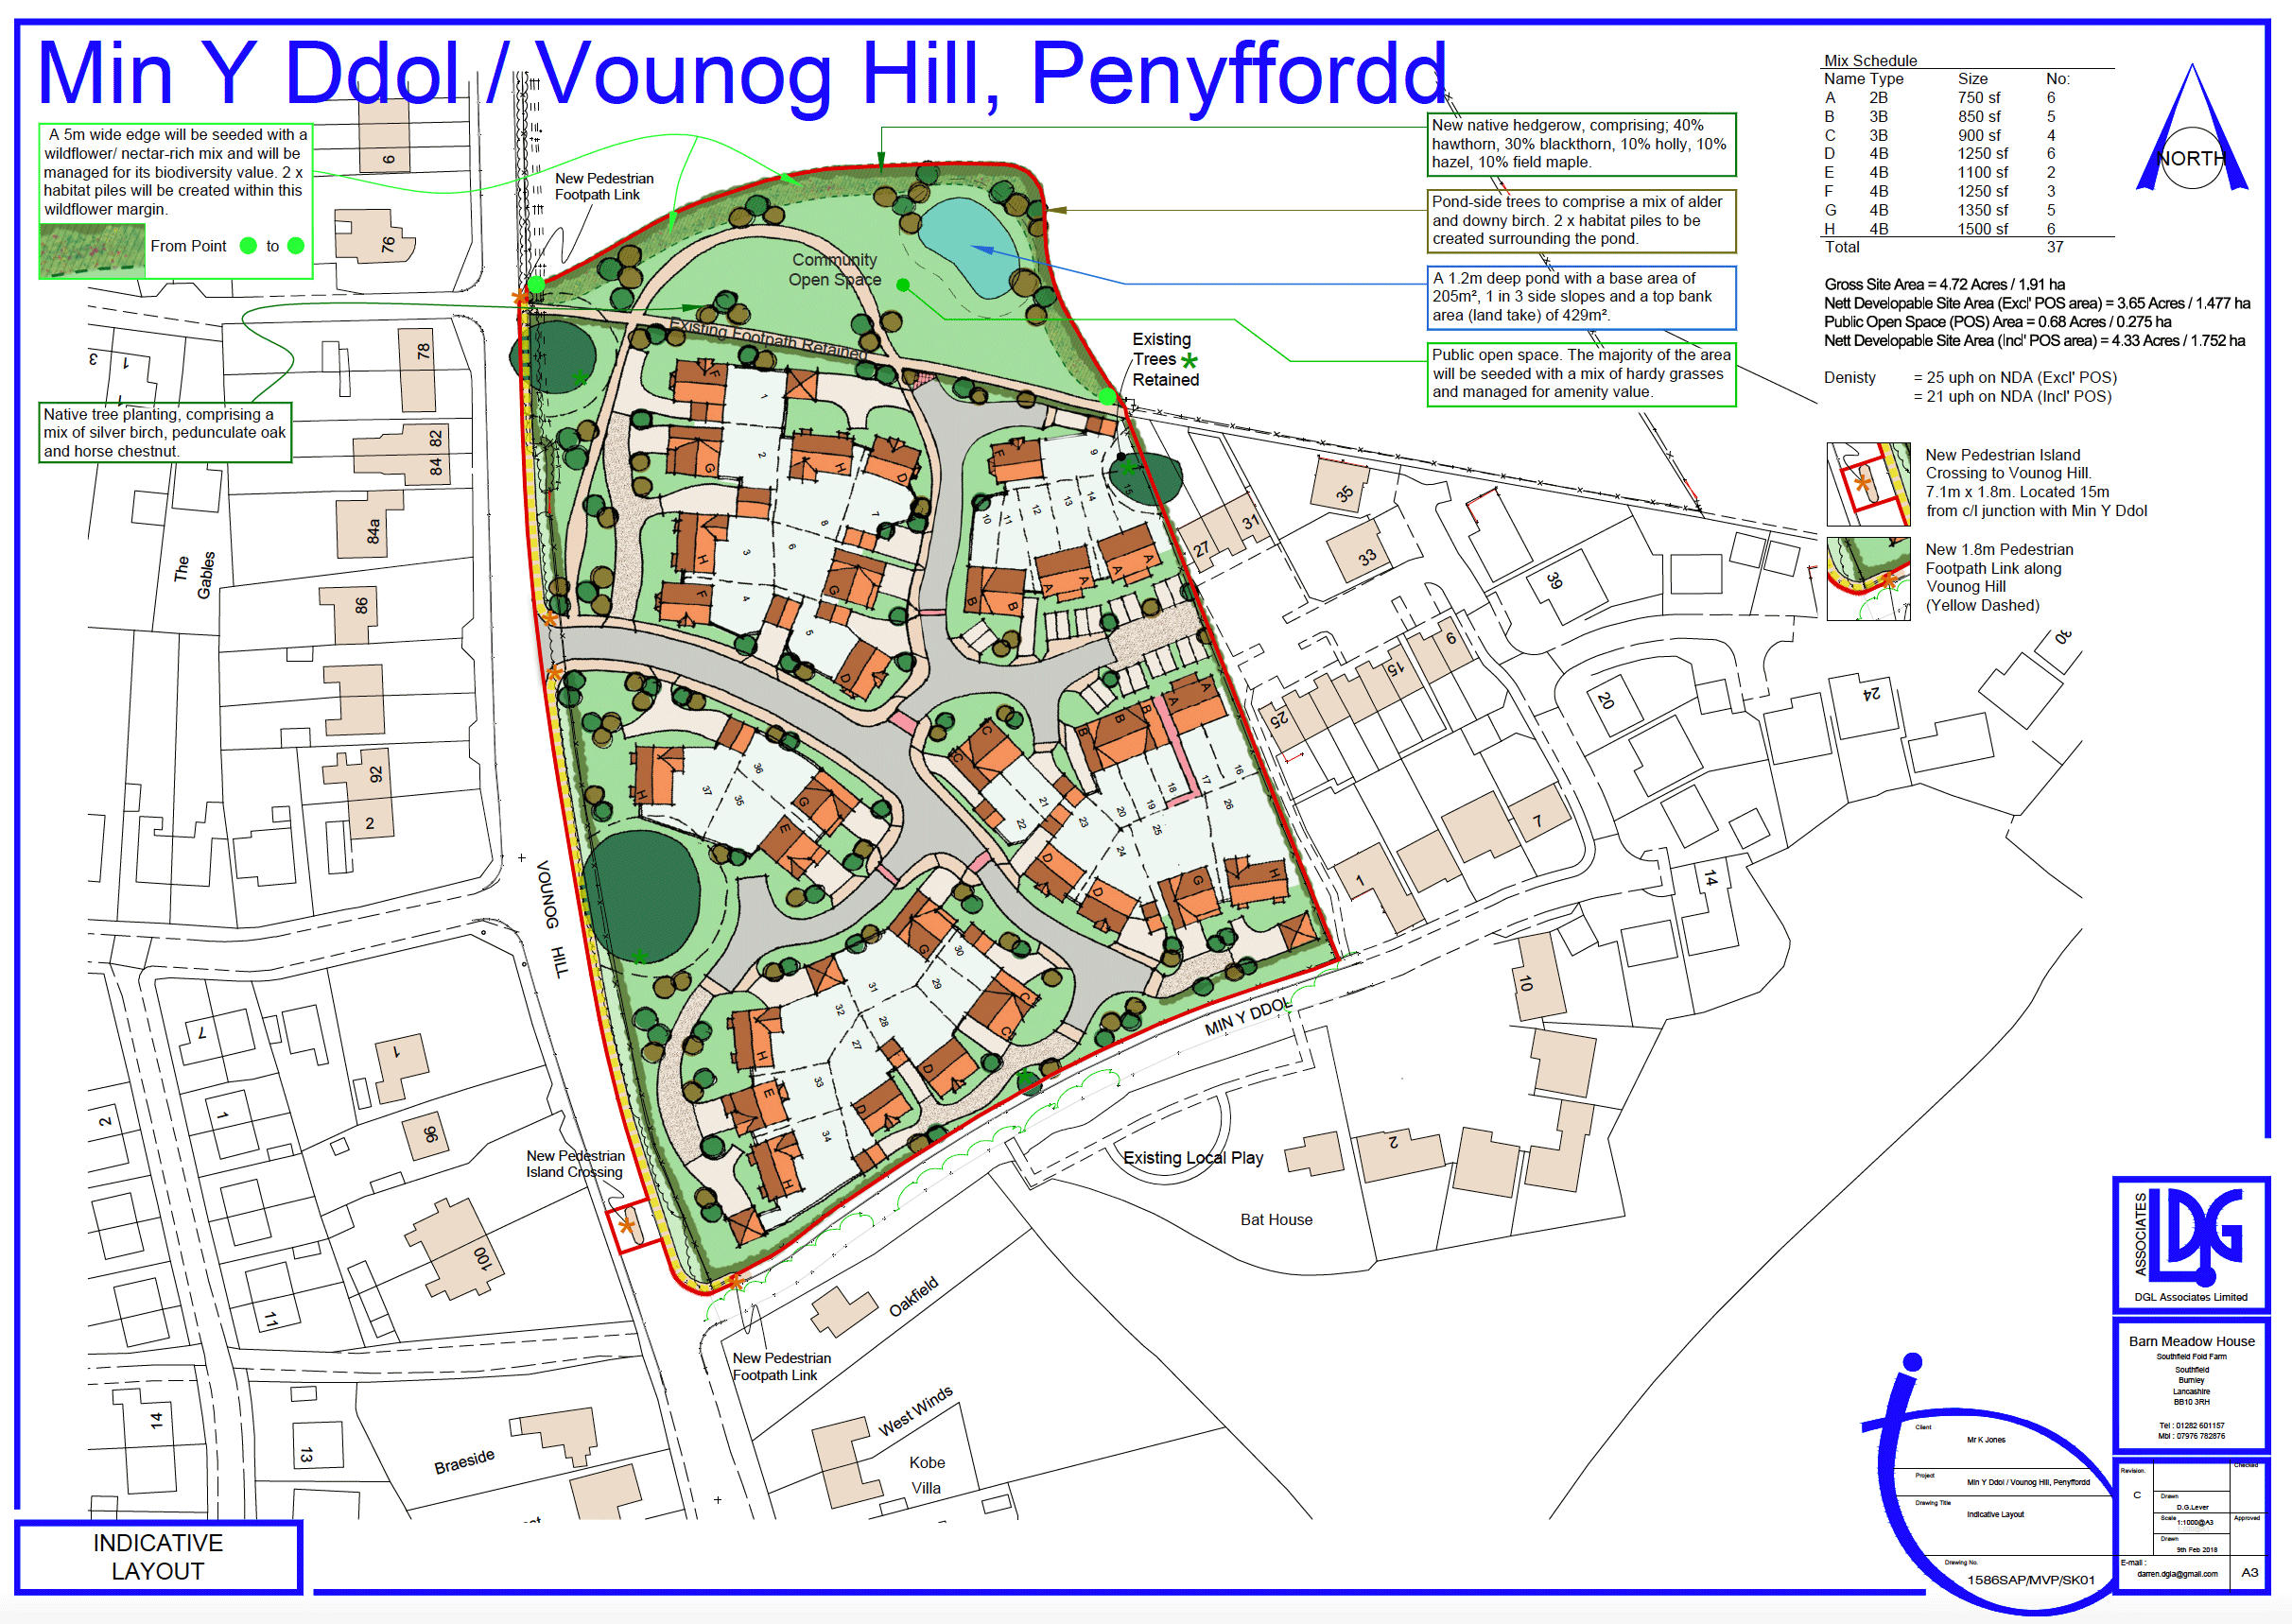 The proposed layout - click for a larger image